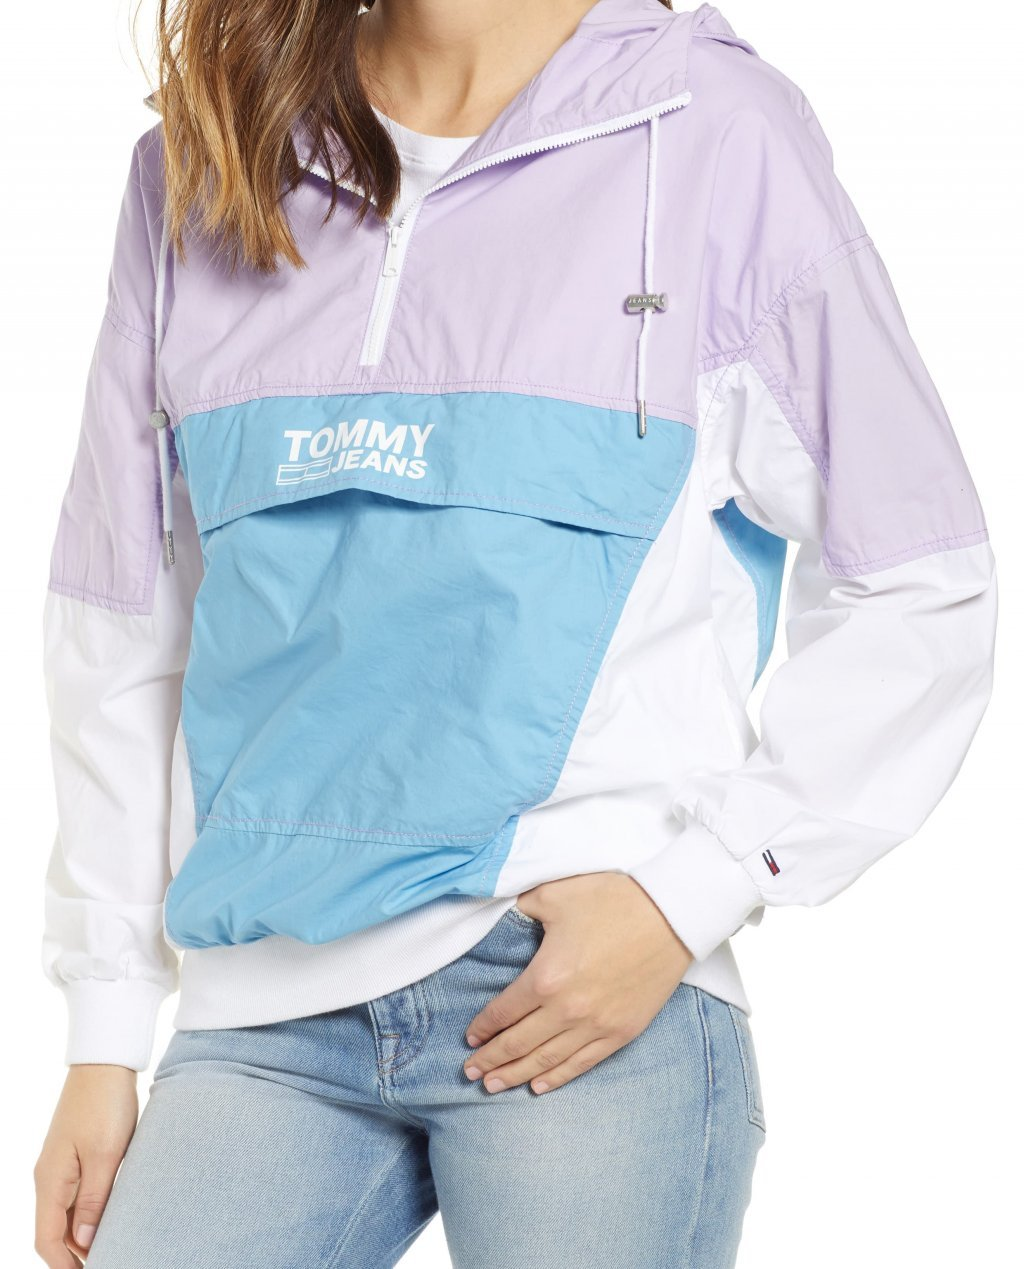 Tommy Jeans TJW Retro Colorblock Pullover